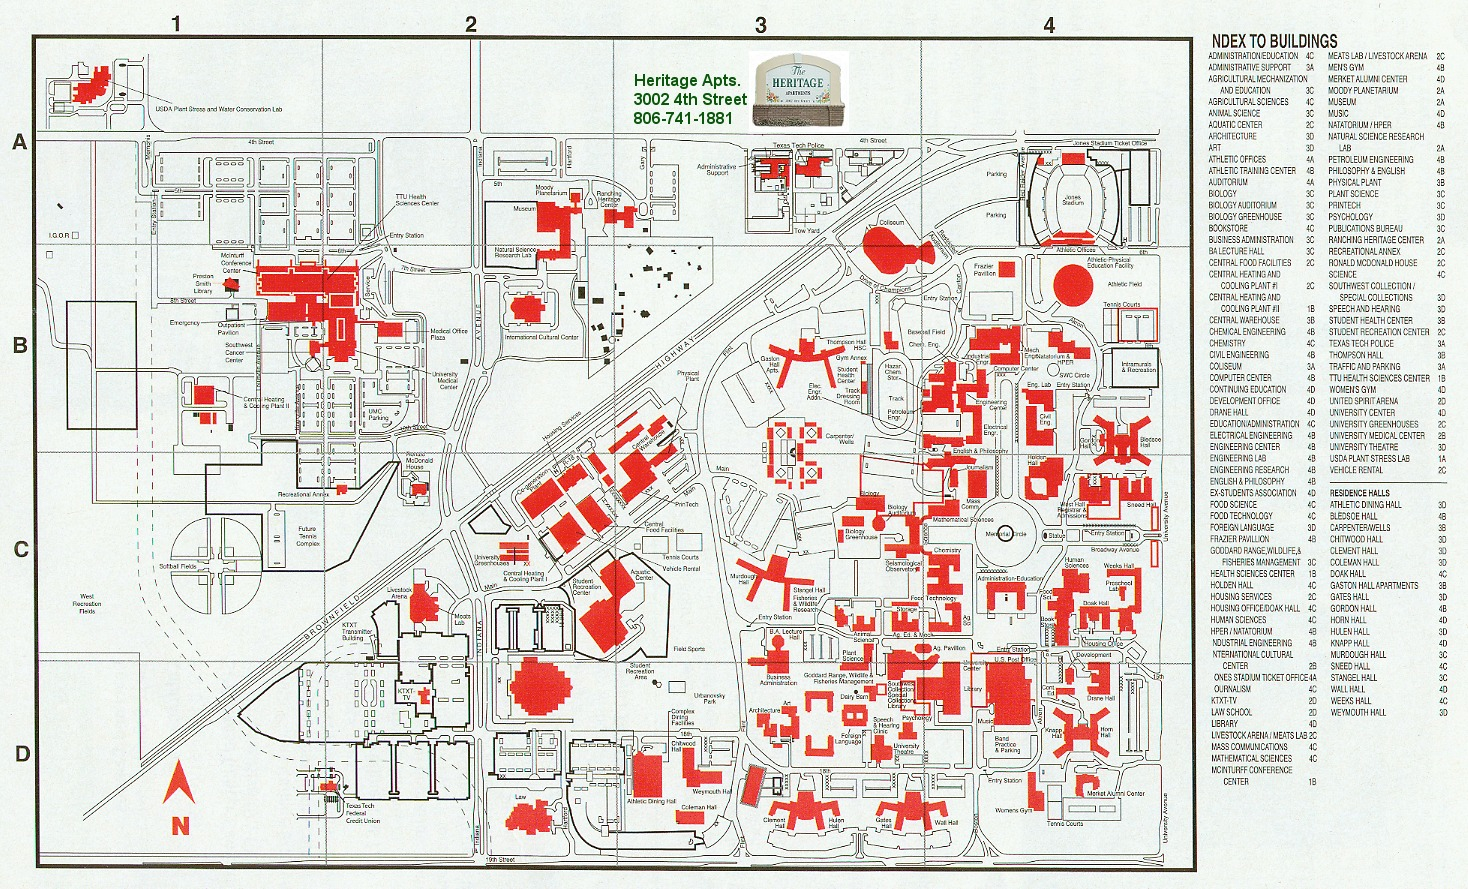 Ttu Campus Map - CYNDIIMENNA